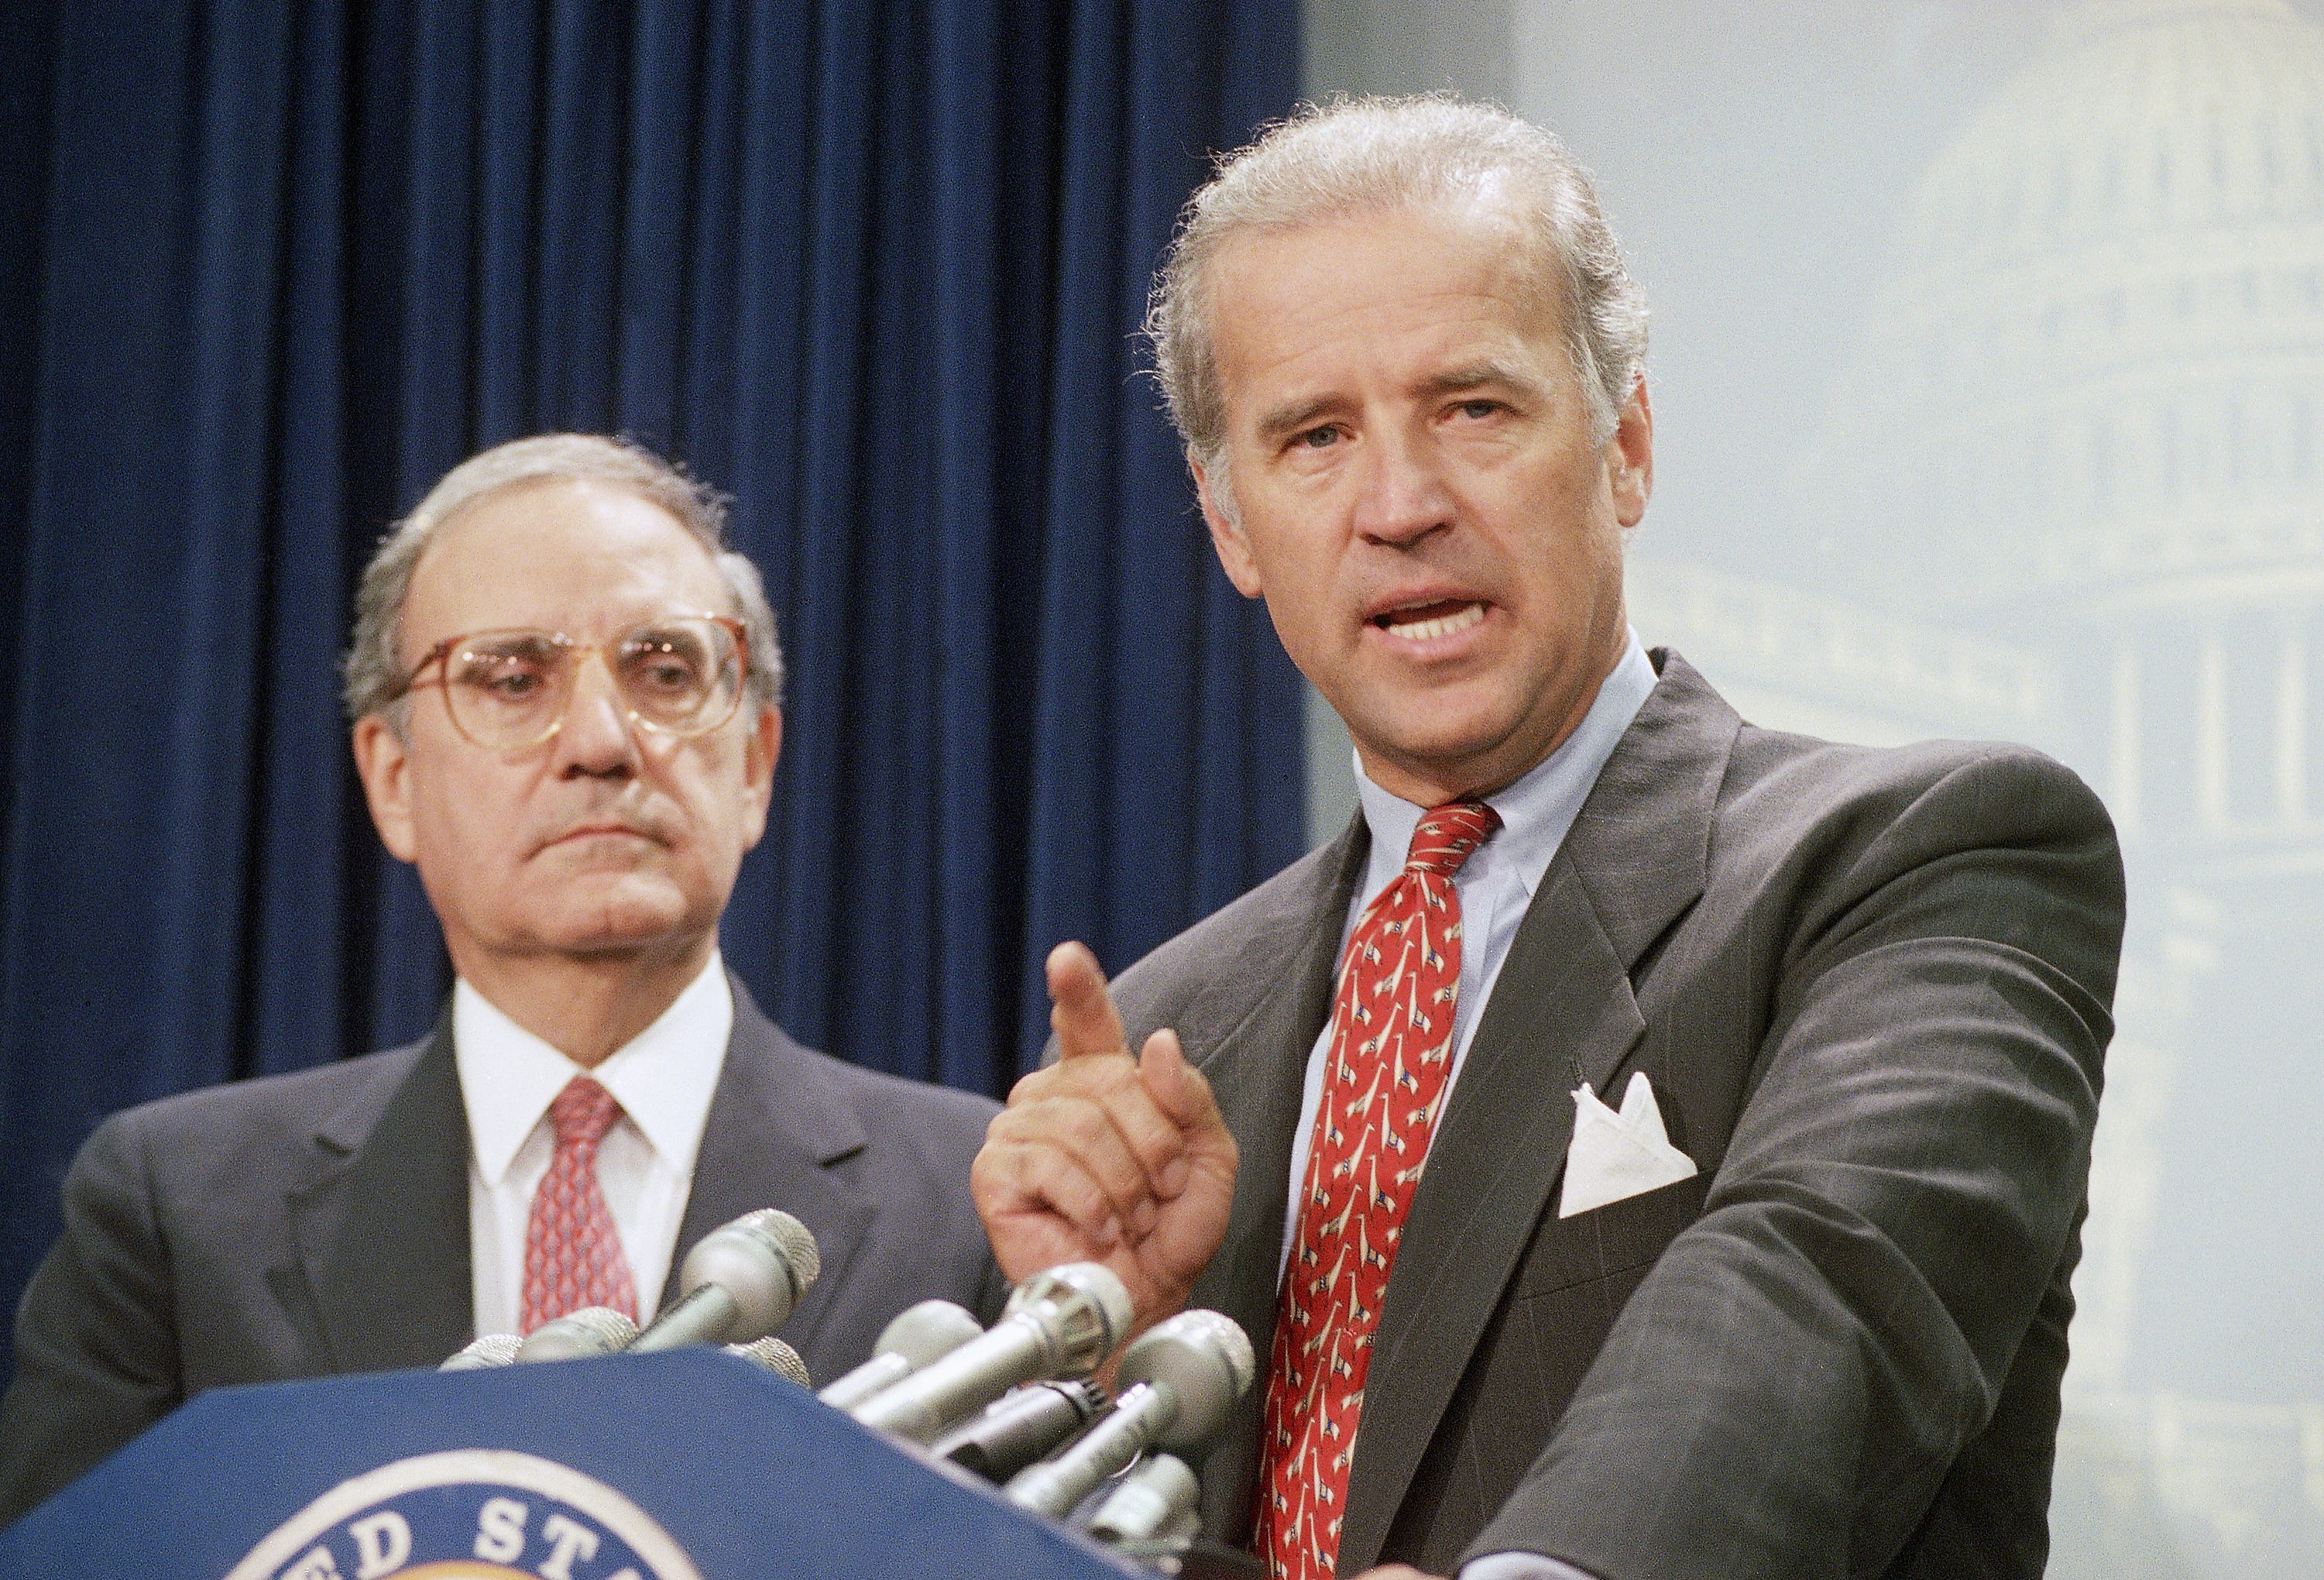 Sen. Joe Biden, D-Del., right, accompanied by Senate Majority Leader George Mitchell of Maine, at a Capitol Hill news conference on Aug. 25, 1994, after the Senate voted to push the $30 billion crime bill.